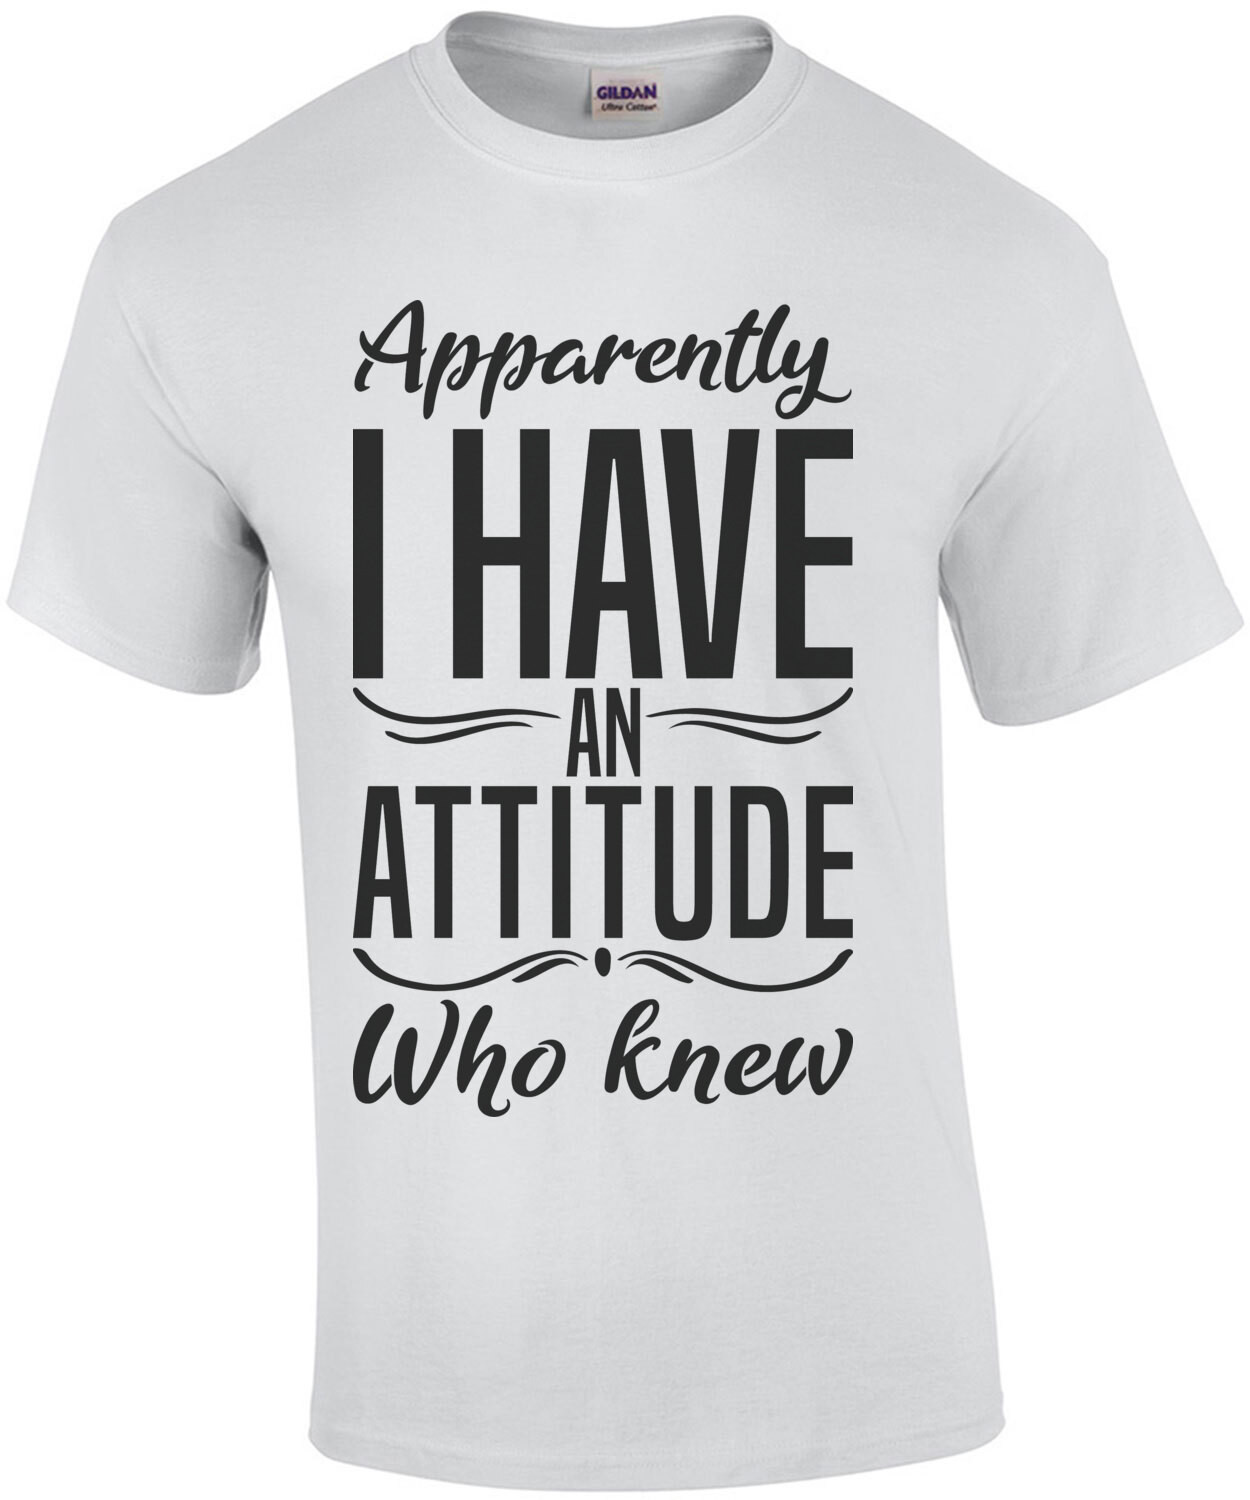 Apparently I have an attitude who knew - sarcastic t-shirt